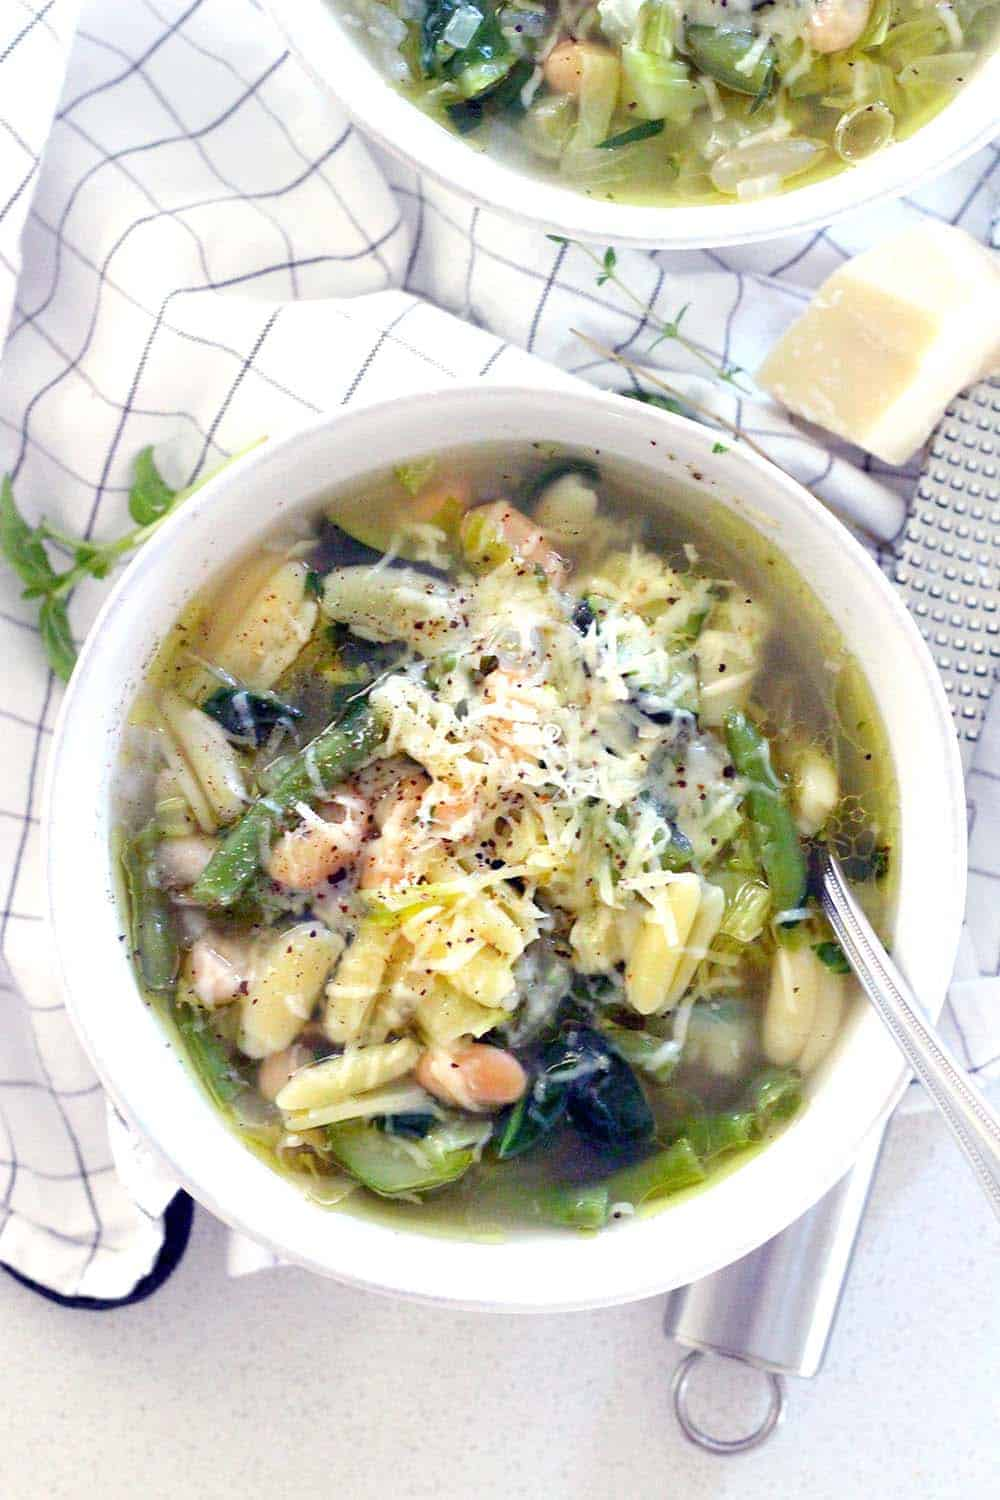 This minestrone soup is PACKED with healthy green veggies, fresh herbs, and topped with a drizzle of olive oil, Parmesan, and pepper. It comes together in 30 minutes and is freezable.